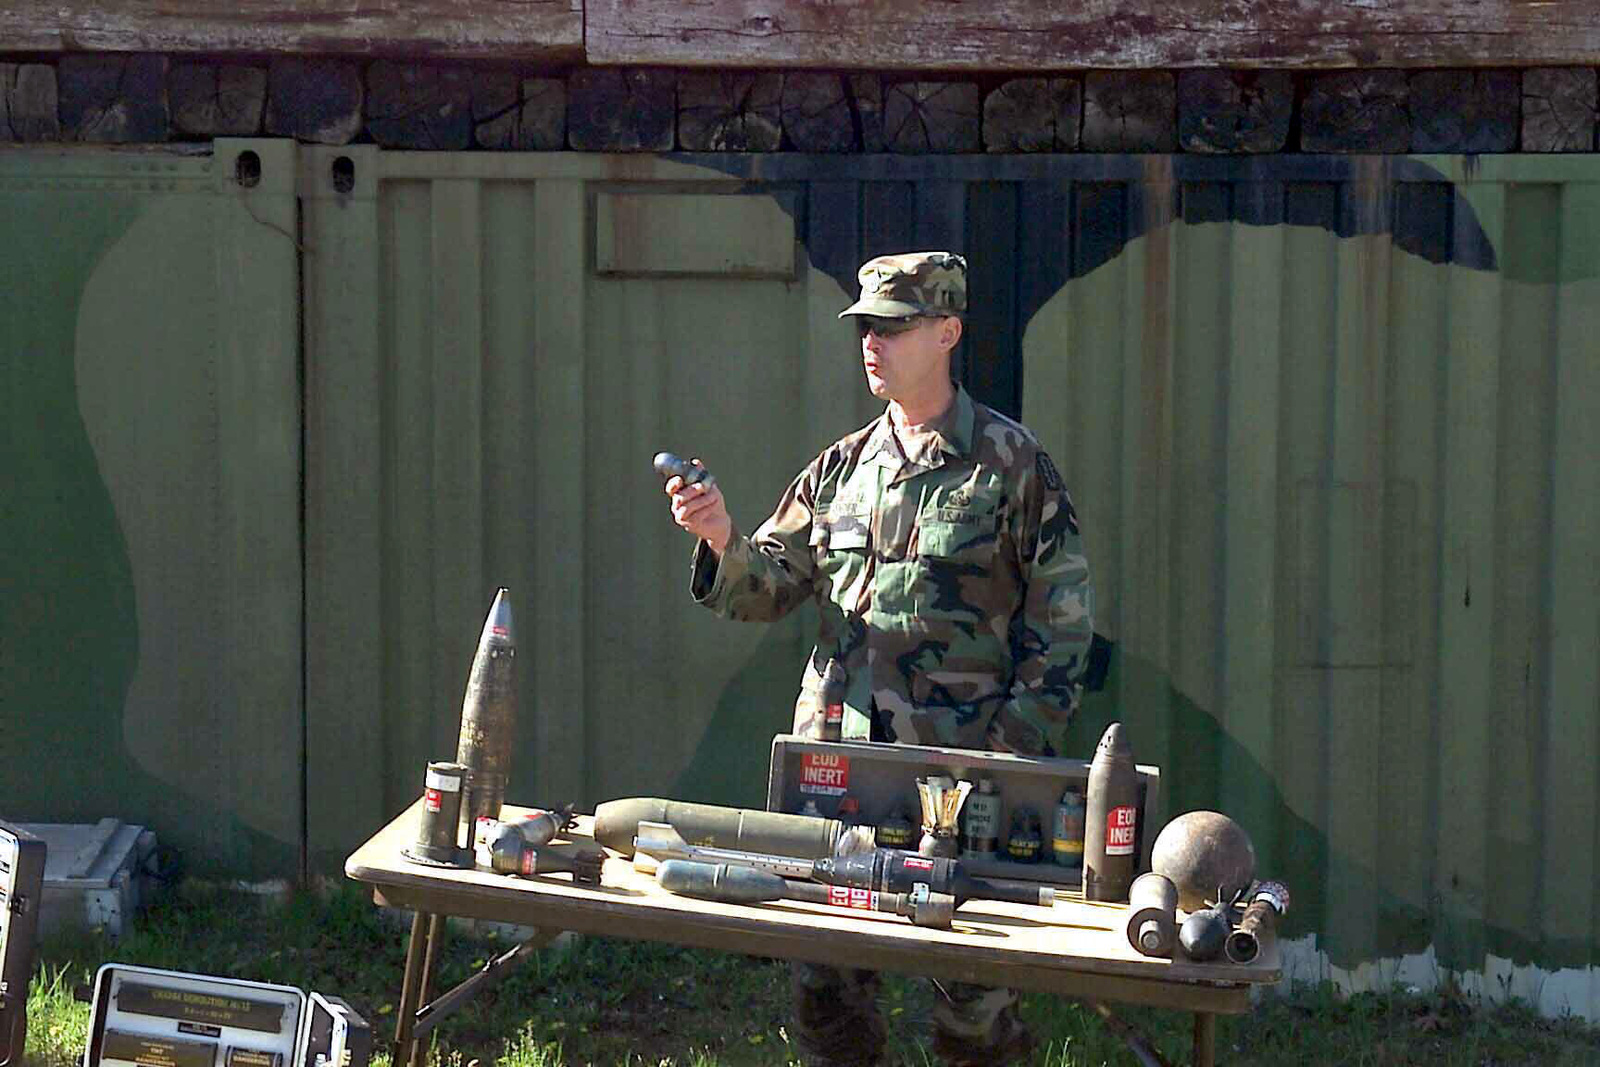 During a demolition exercise at Range 17a, First Sergeant (1SG) Donald Vender, USA, 788th Ordnance Company, Explosive Ordnance Disposal (EOD), presents some of the explosives found at private residences to the media